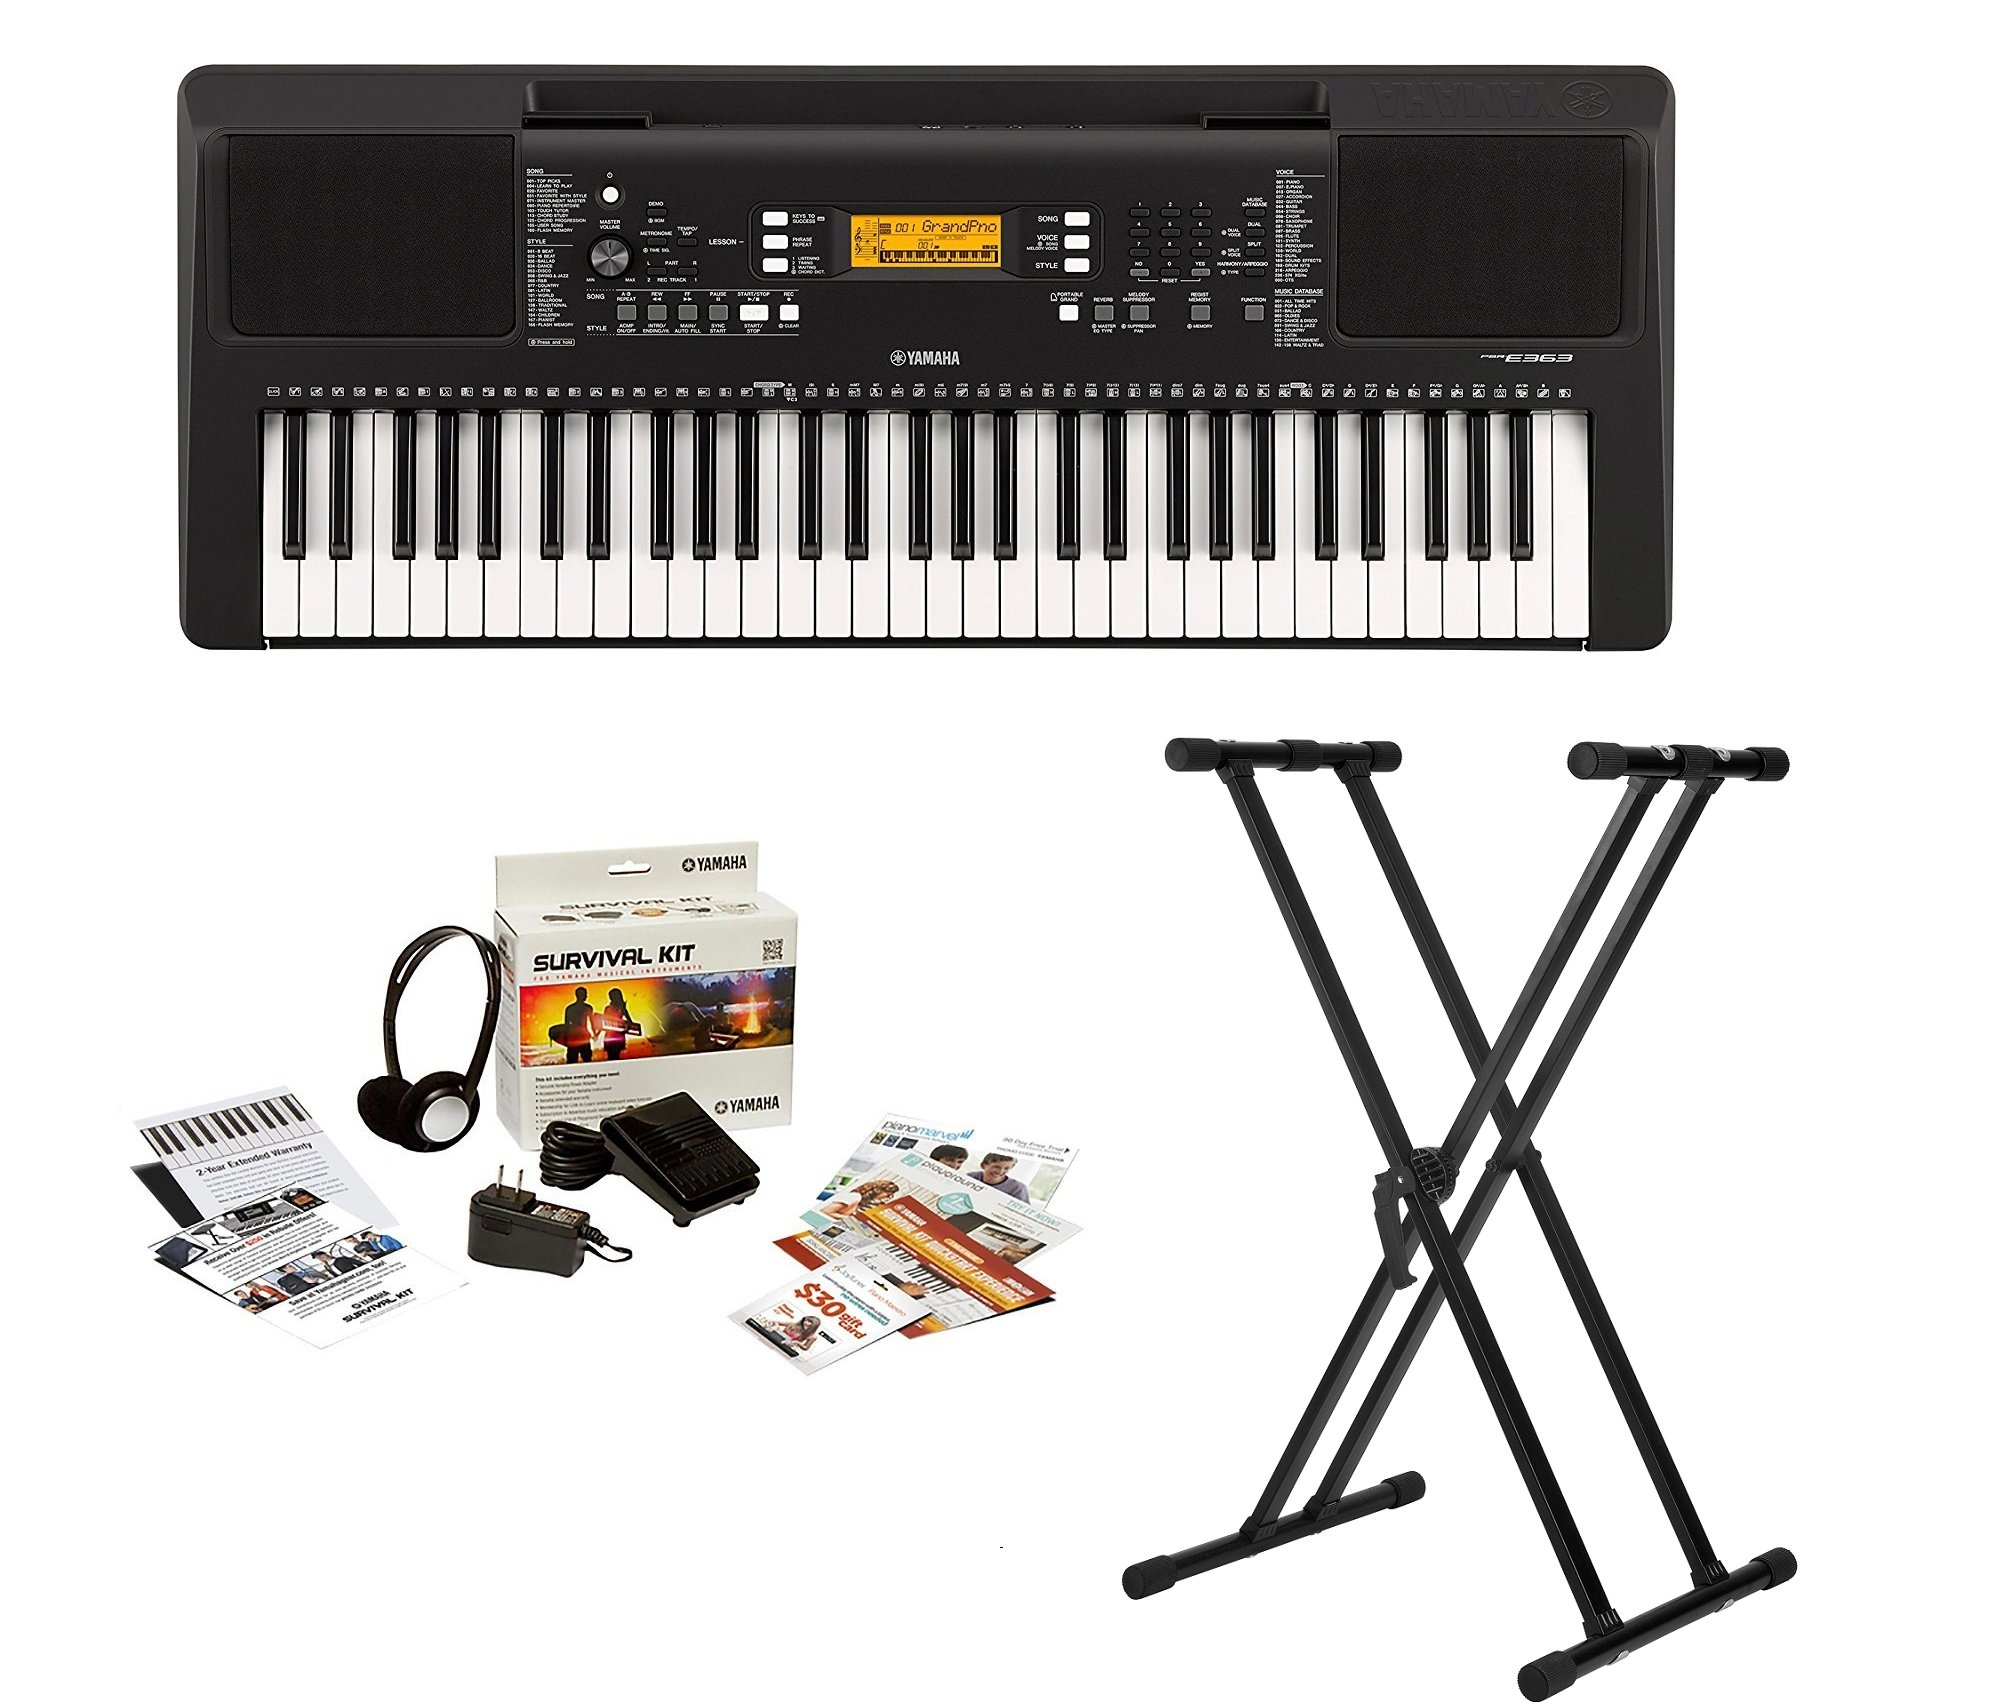 Yamaha PSRE363 61-Key Portable Keyboard with Knox Double X Stand and Survivalkit (Includes Power Adaptor and 2 Year Warranty) by YAMAHA